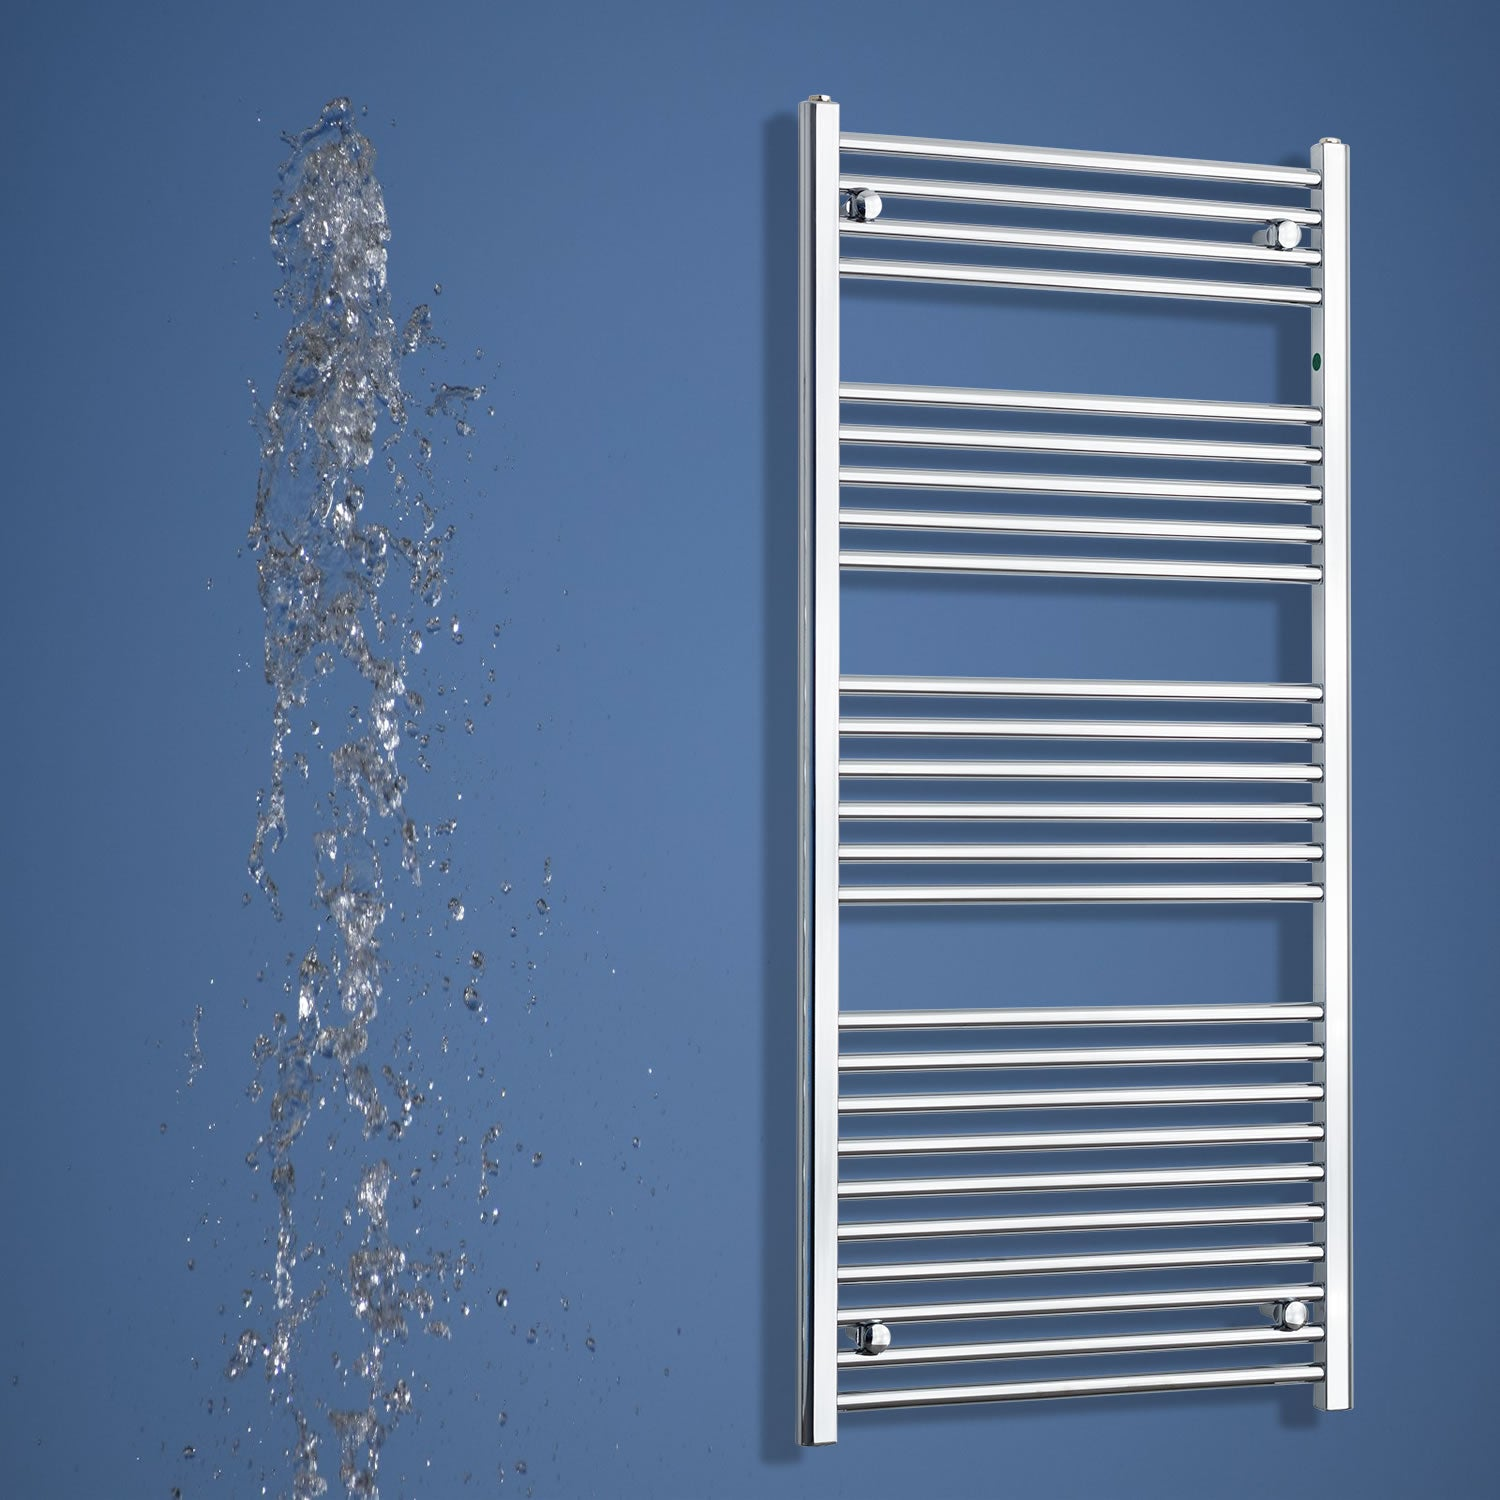 650mm Wide 1400mm High Flat Chrome Heated Towel Rail Radiator HTR